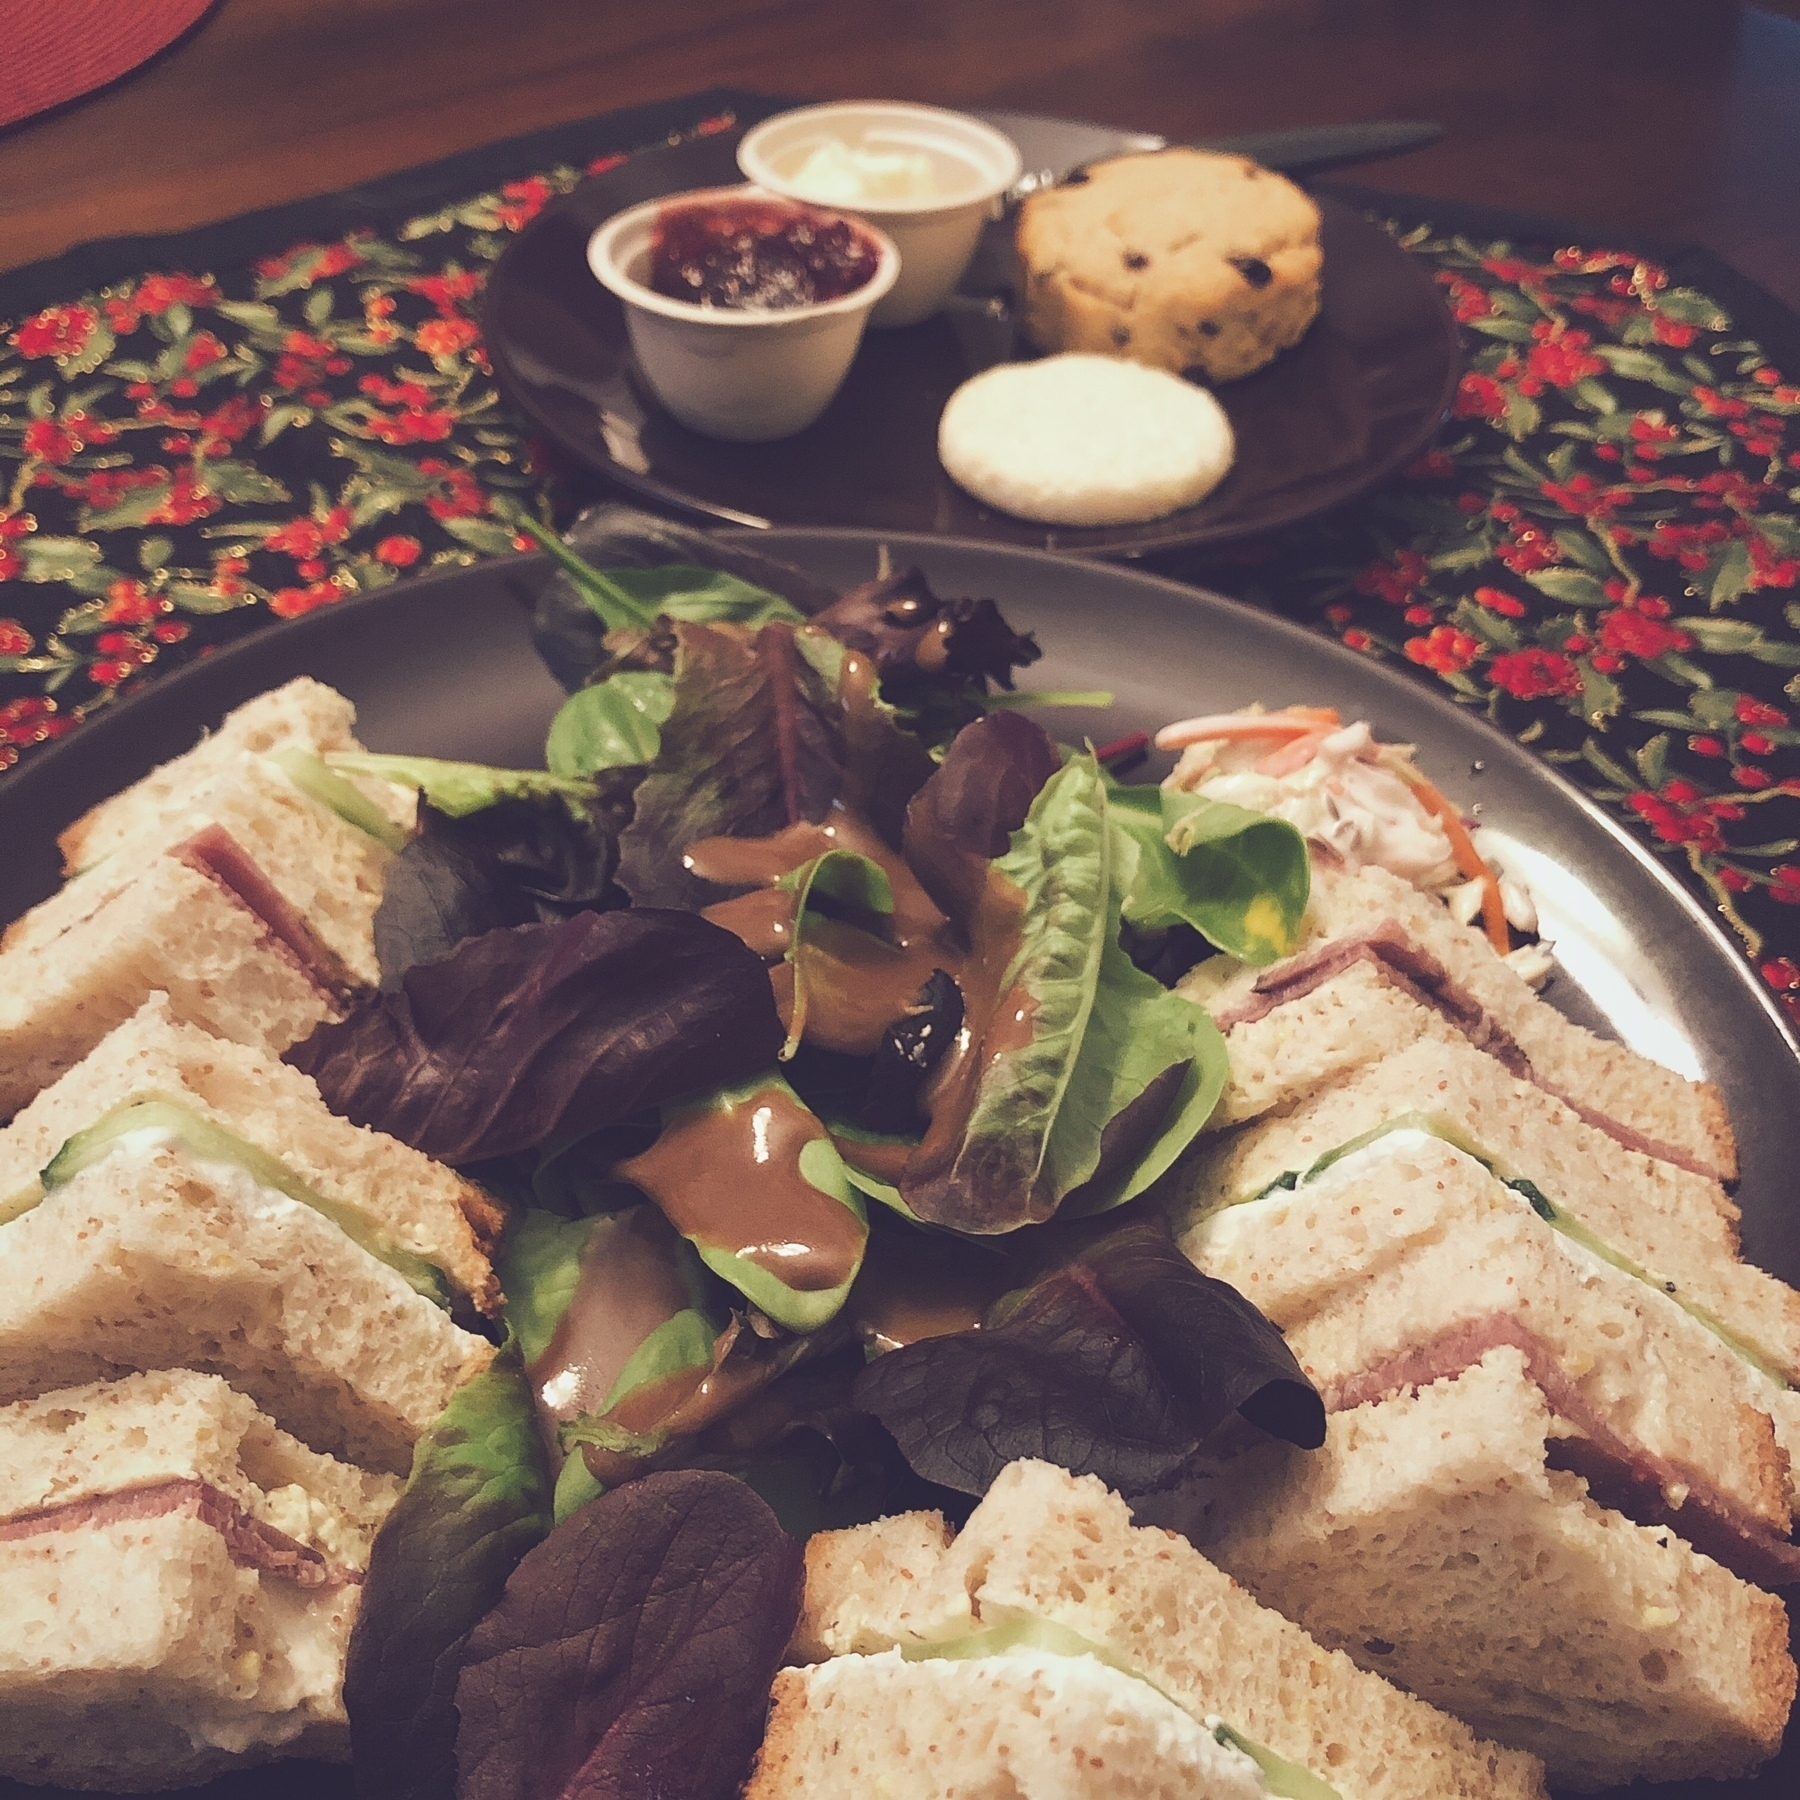 Plate of tea sandwiches and salad, with a smaller plate with a biscuit and scone in the background